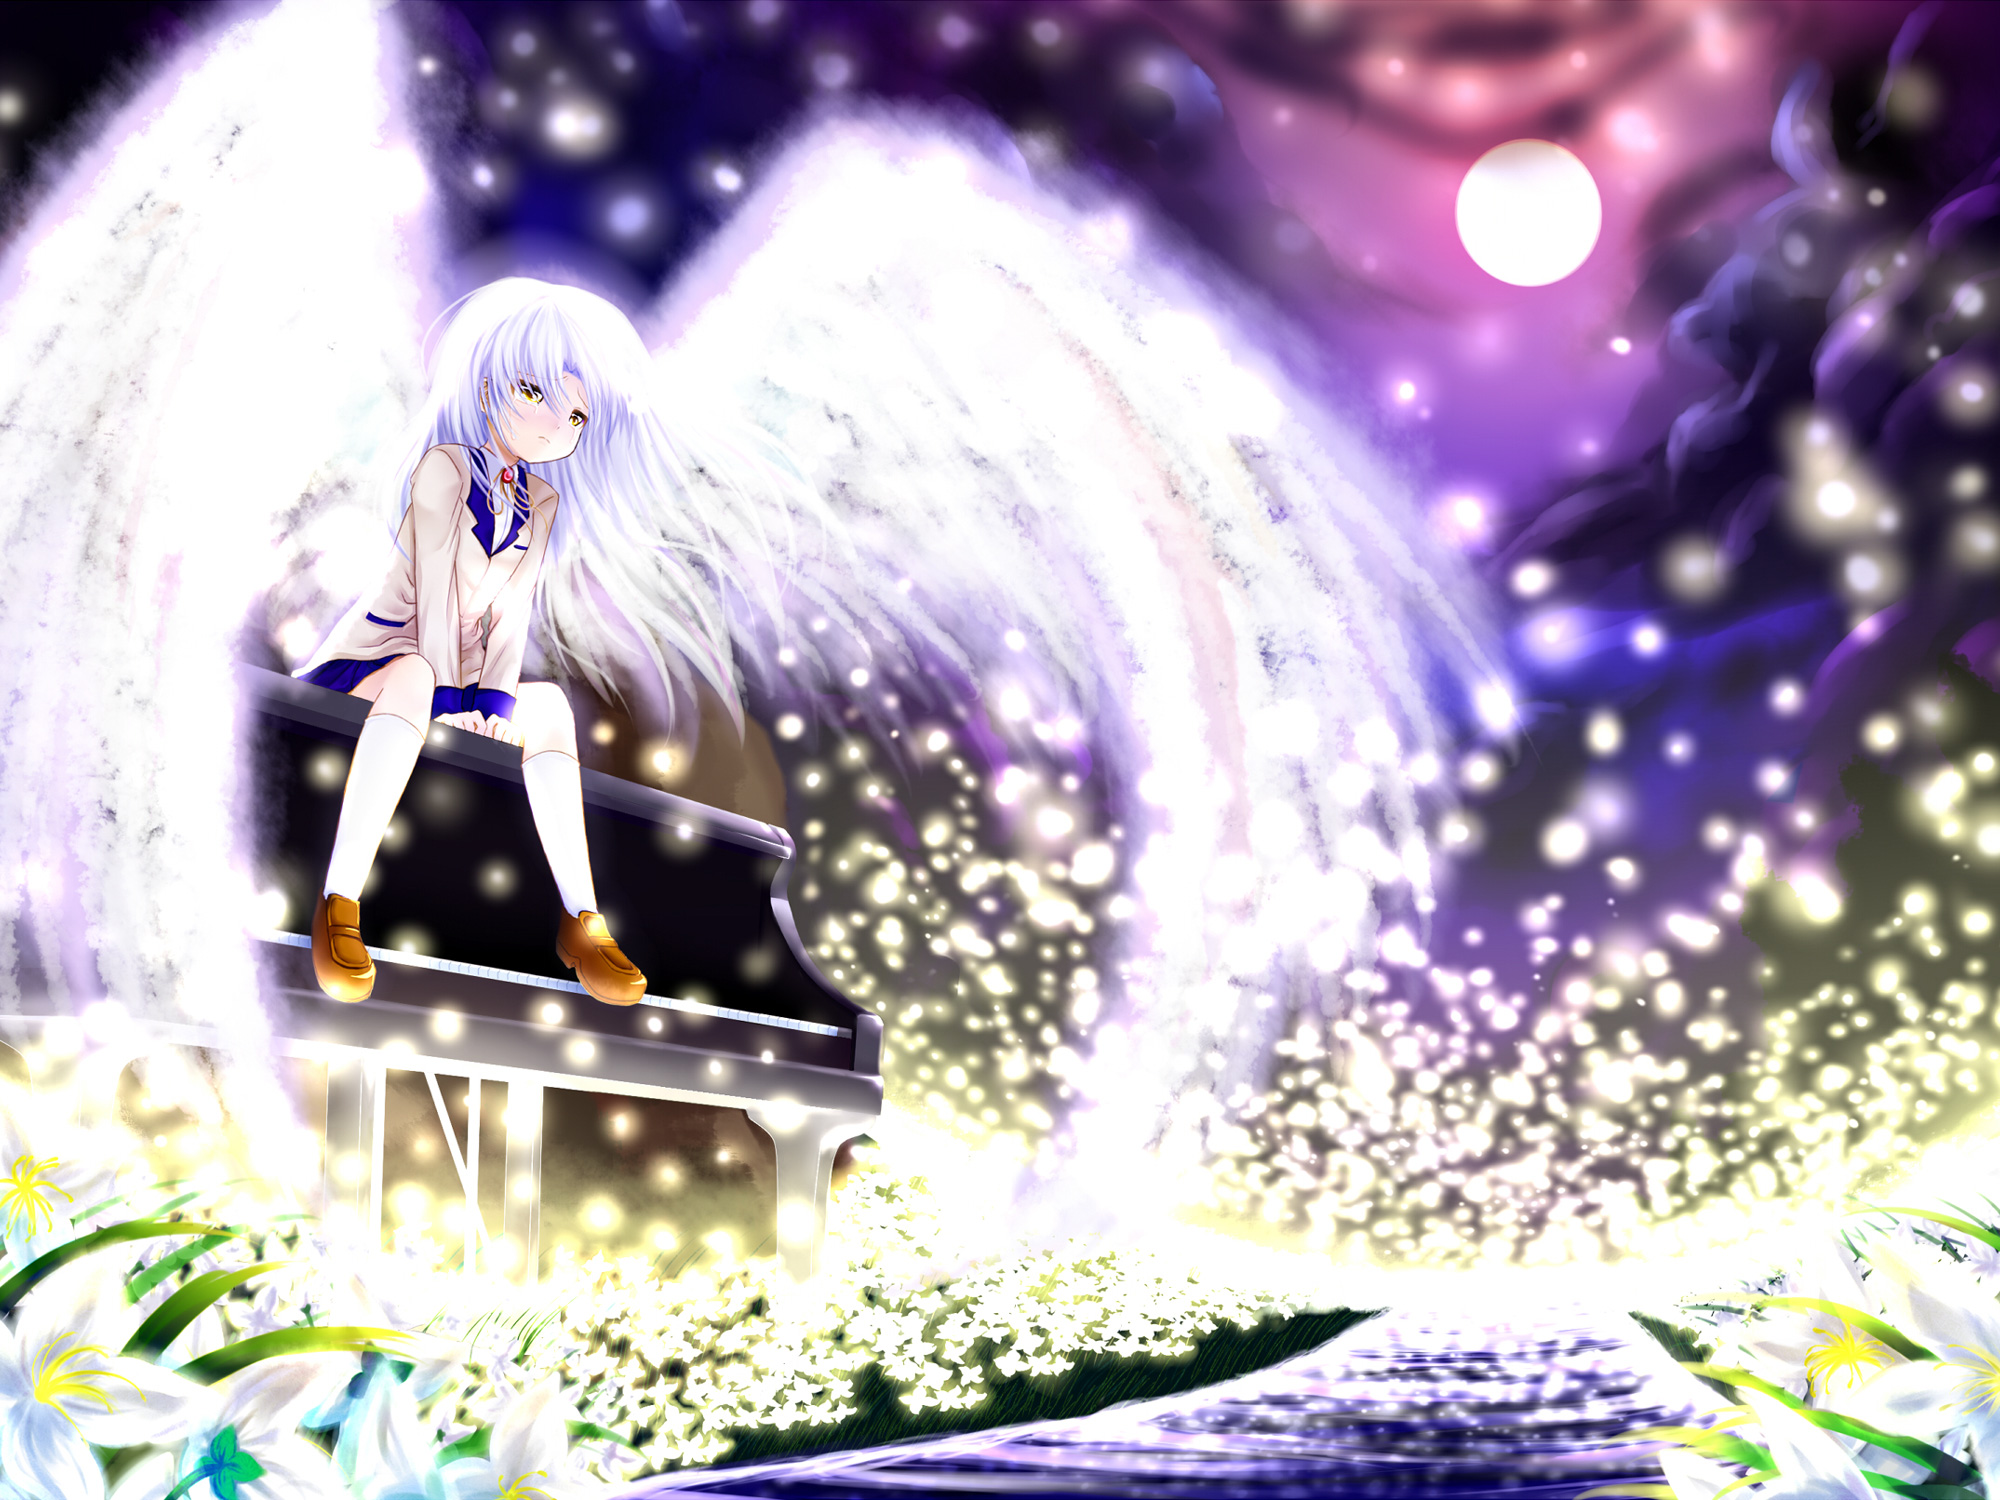 Angel beats full hd wallpaper and background image 2000x1500 anime angel beats angel wings moon flower kanade tachibana piano wallpaper voltagebd